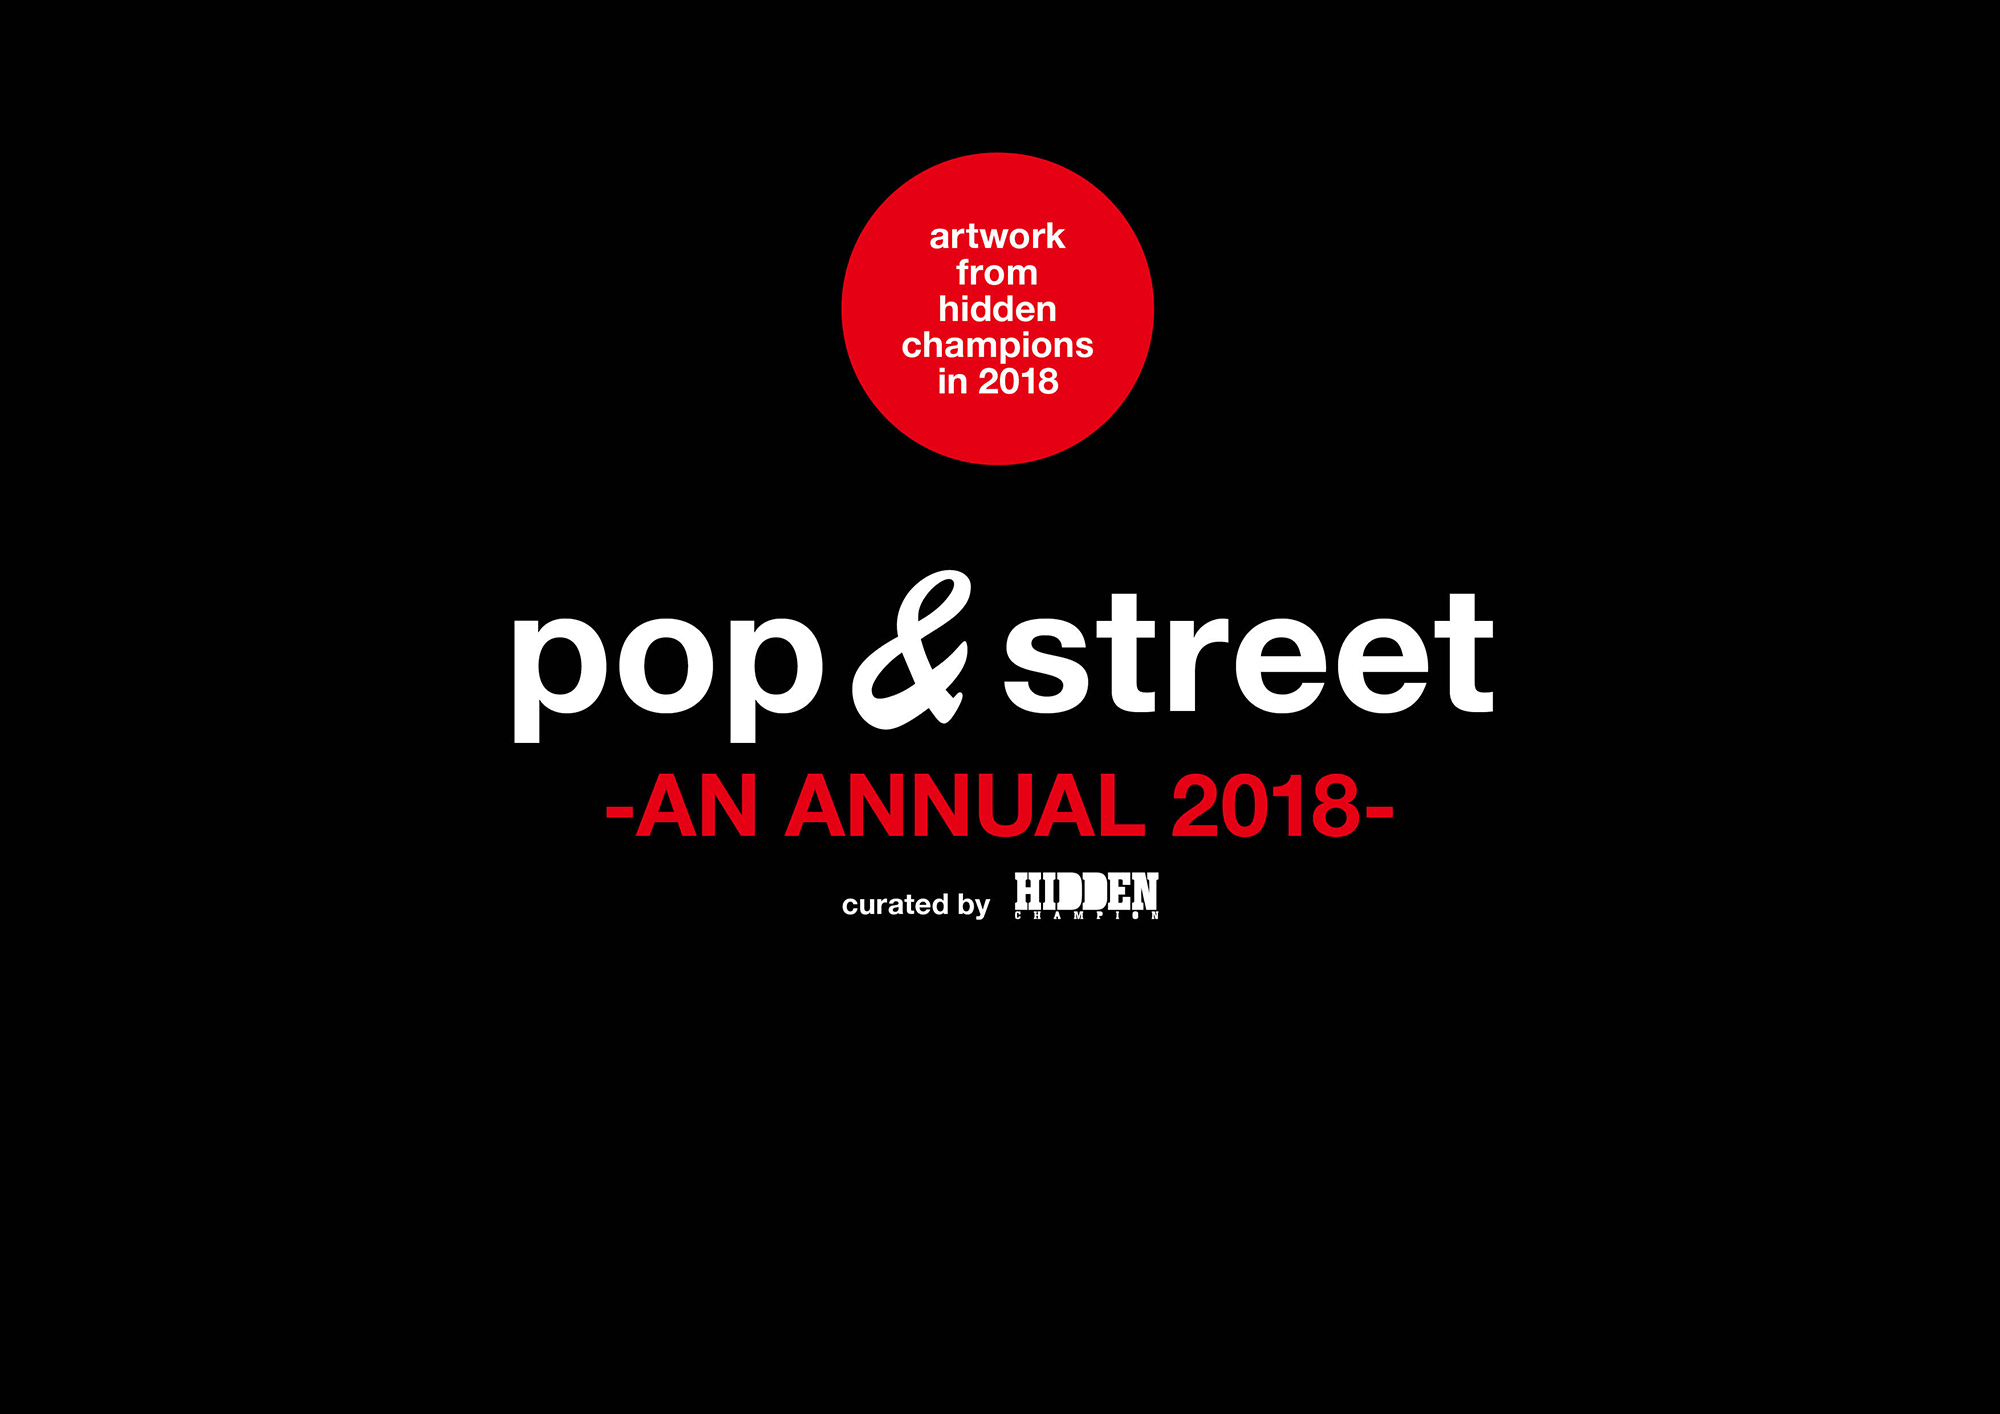 pop & street -AN ANNUAL 2018-